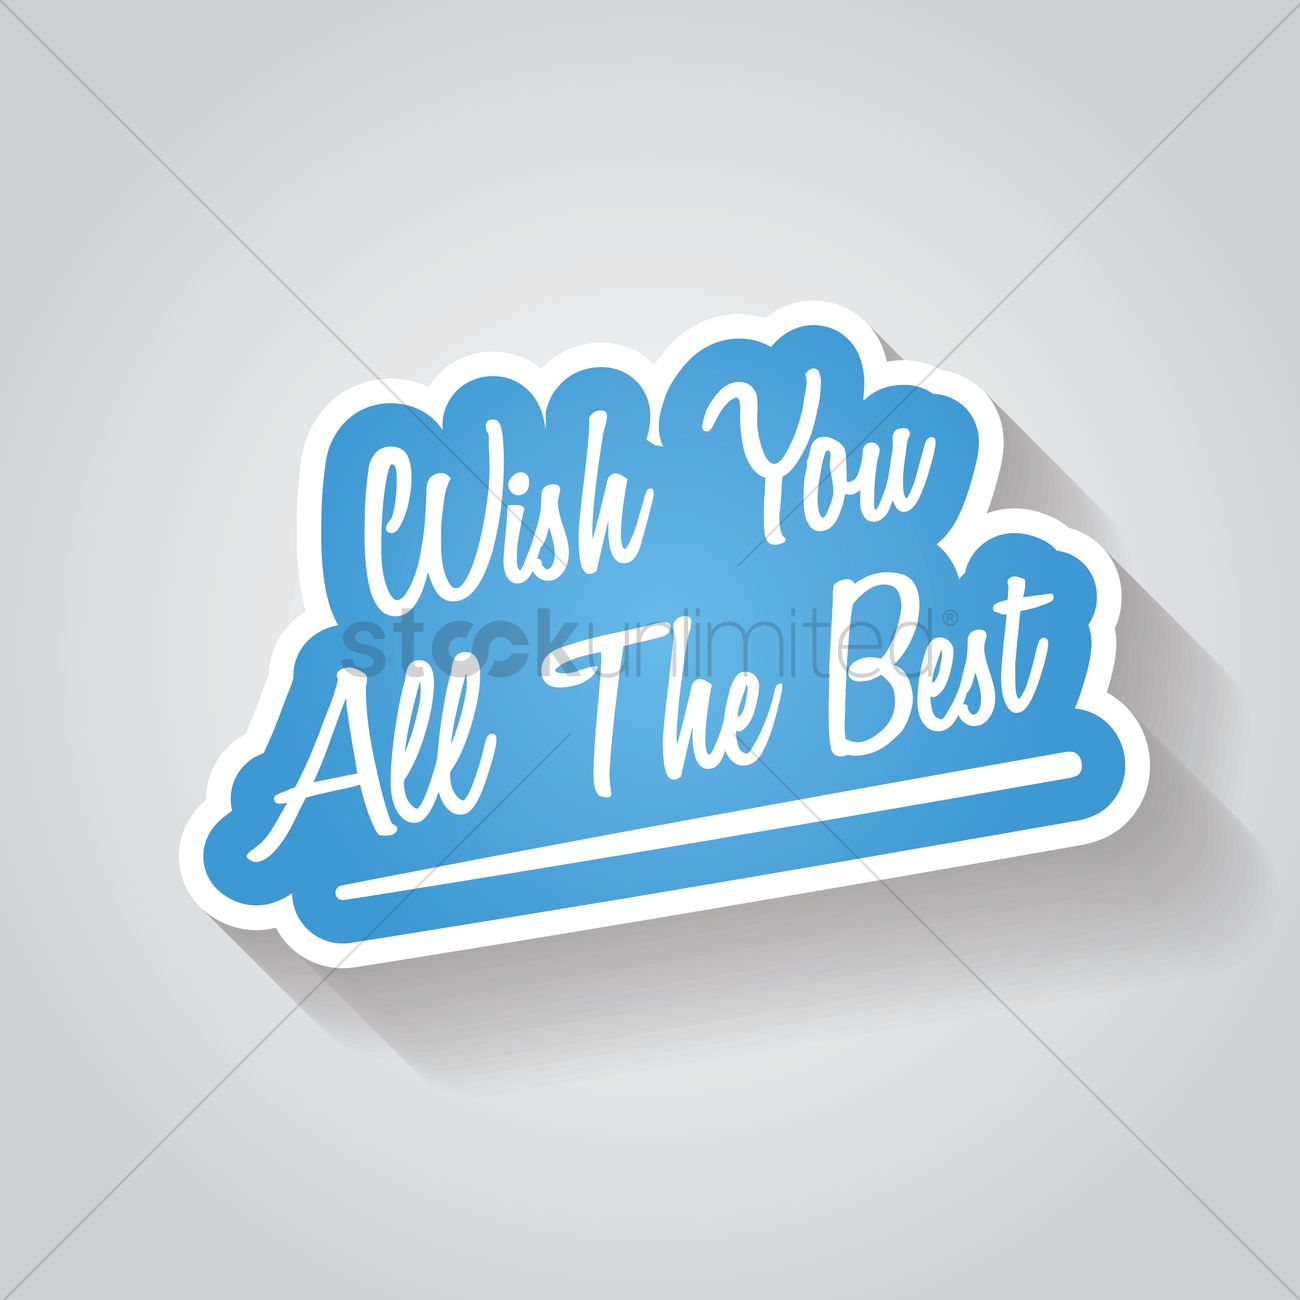 Sightly Wish You All Sign Vector Graphic Wish You All Sign Vector Image Stockunlimited Wish You On Wish You Your Future Endeavors inspiration Wish You The Best